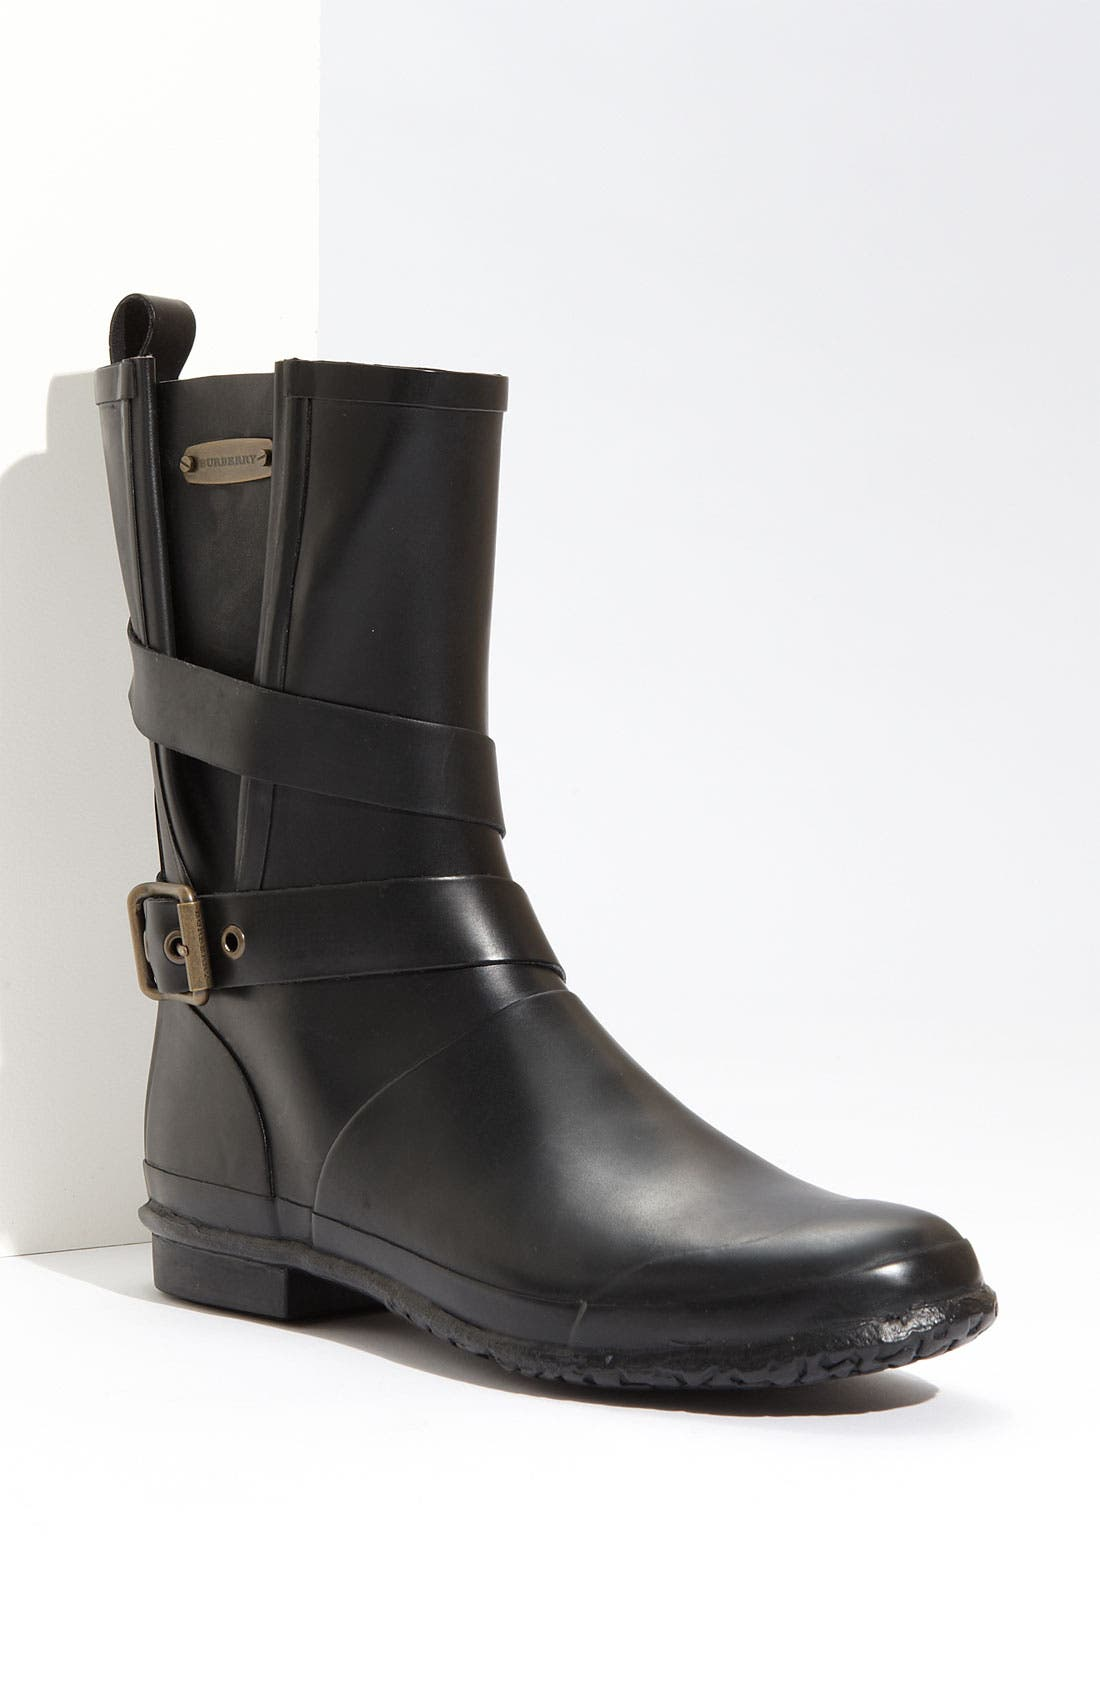 Alternate Image 1 Selected - Burberry Buckled Rain Boot (Women)